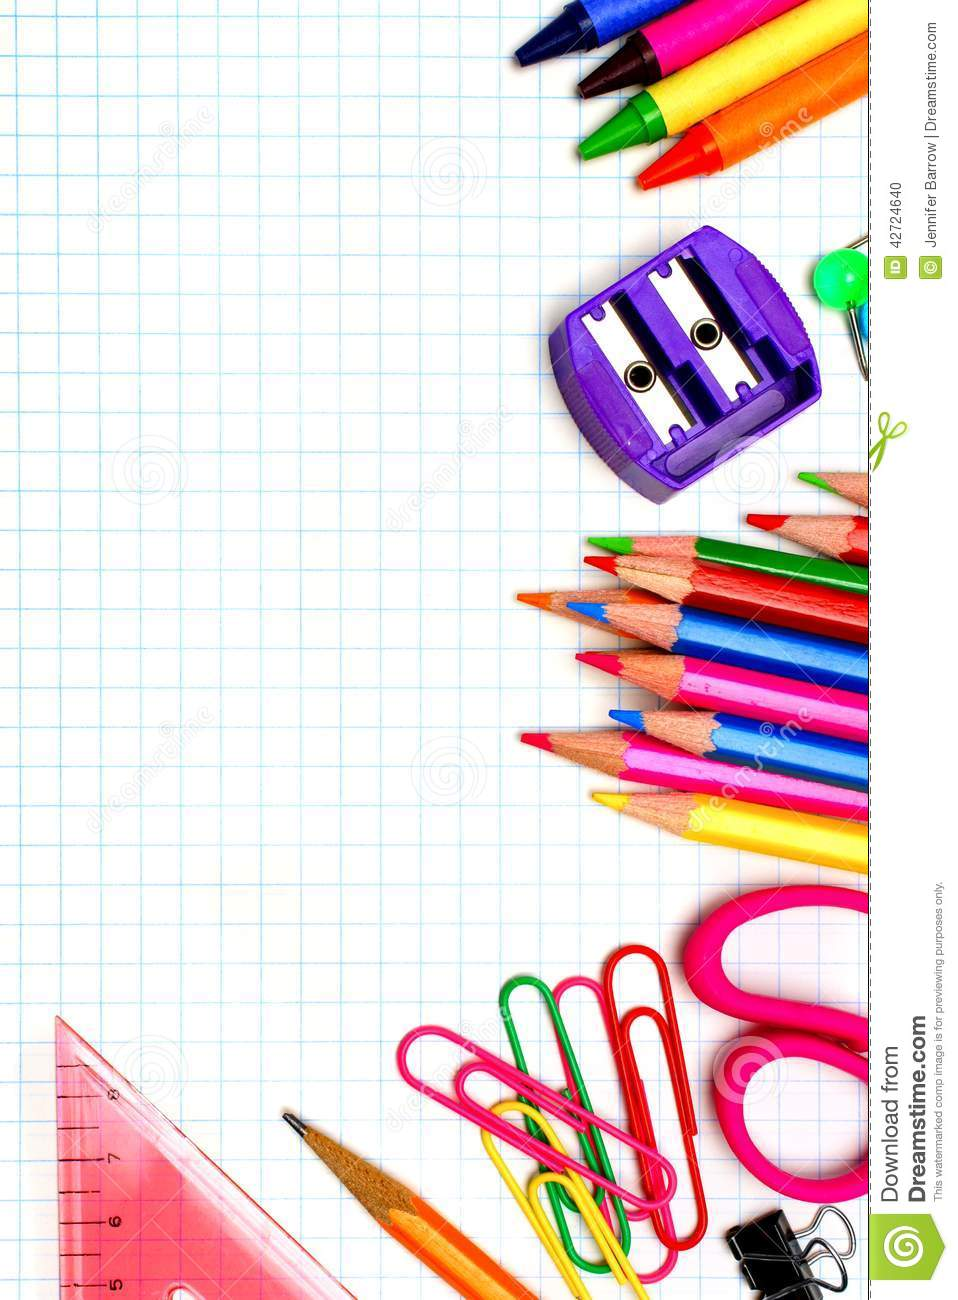 School supplies border stock photo. Image of mathematics